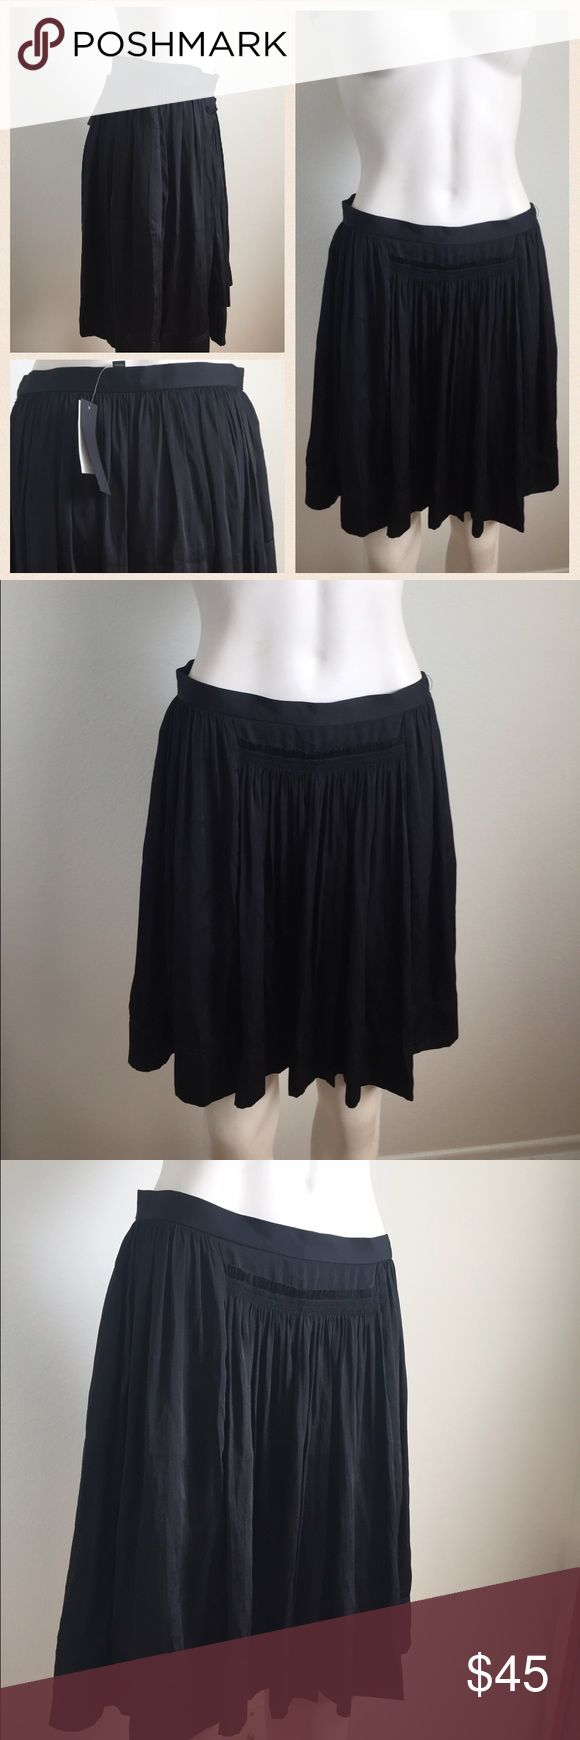 Banana Republic black skirt Gorgeous skirt by Banana Republic. Brand new with tags! Very flowy fabric. Perfect day to night skirt. Banana Republic Skirts